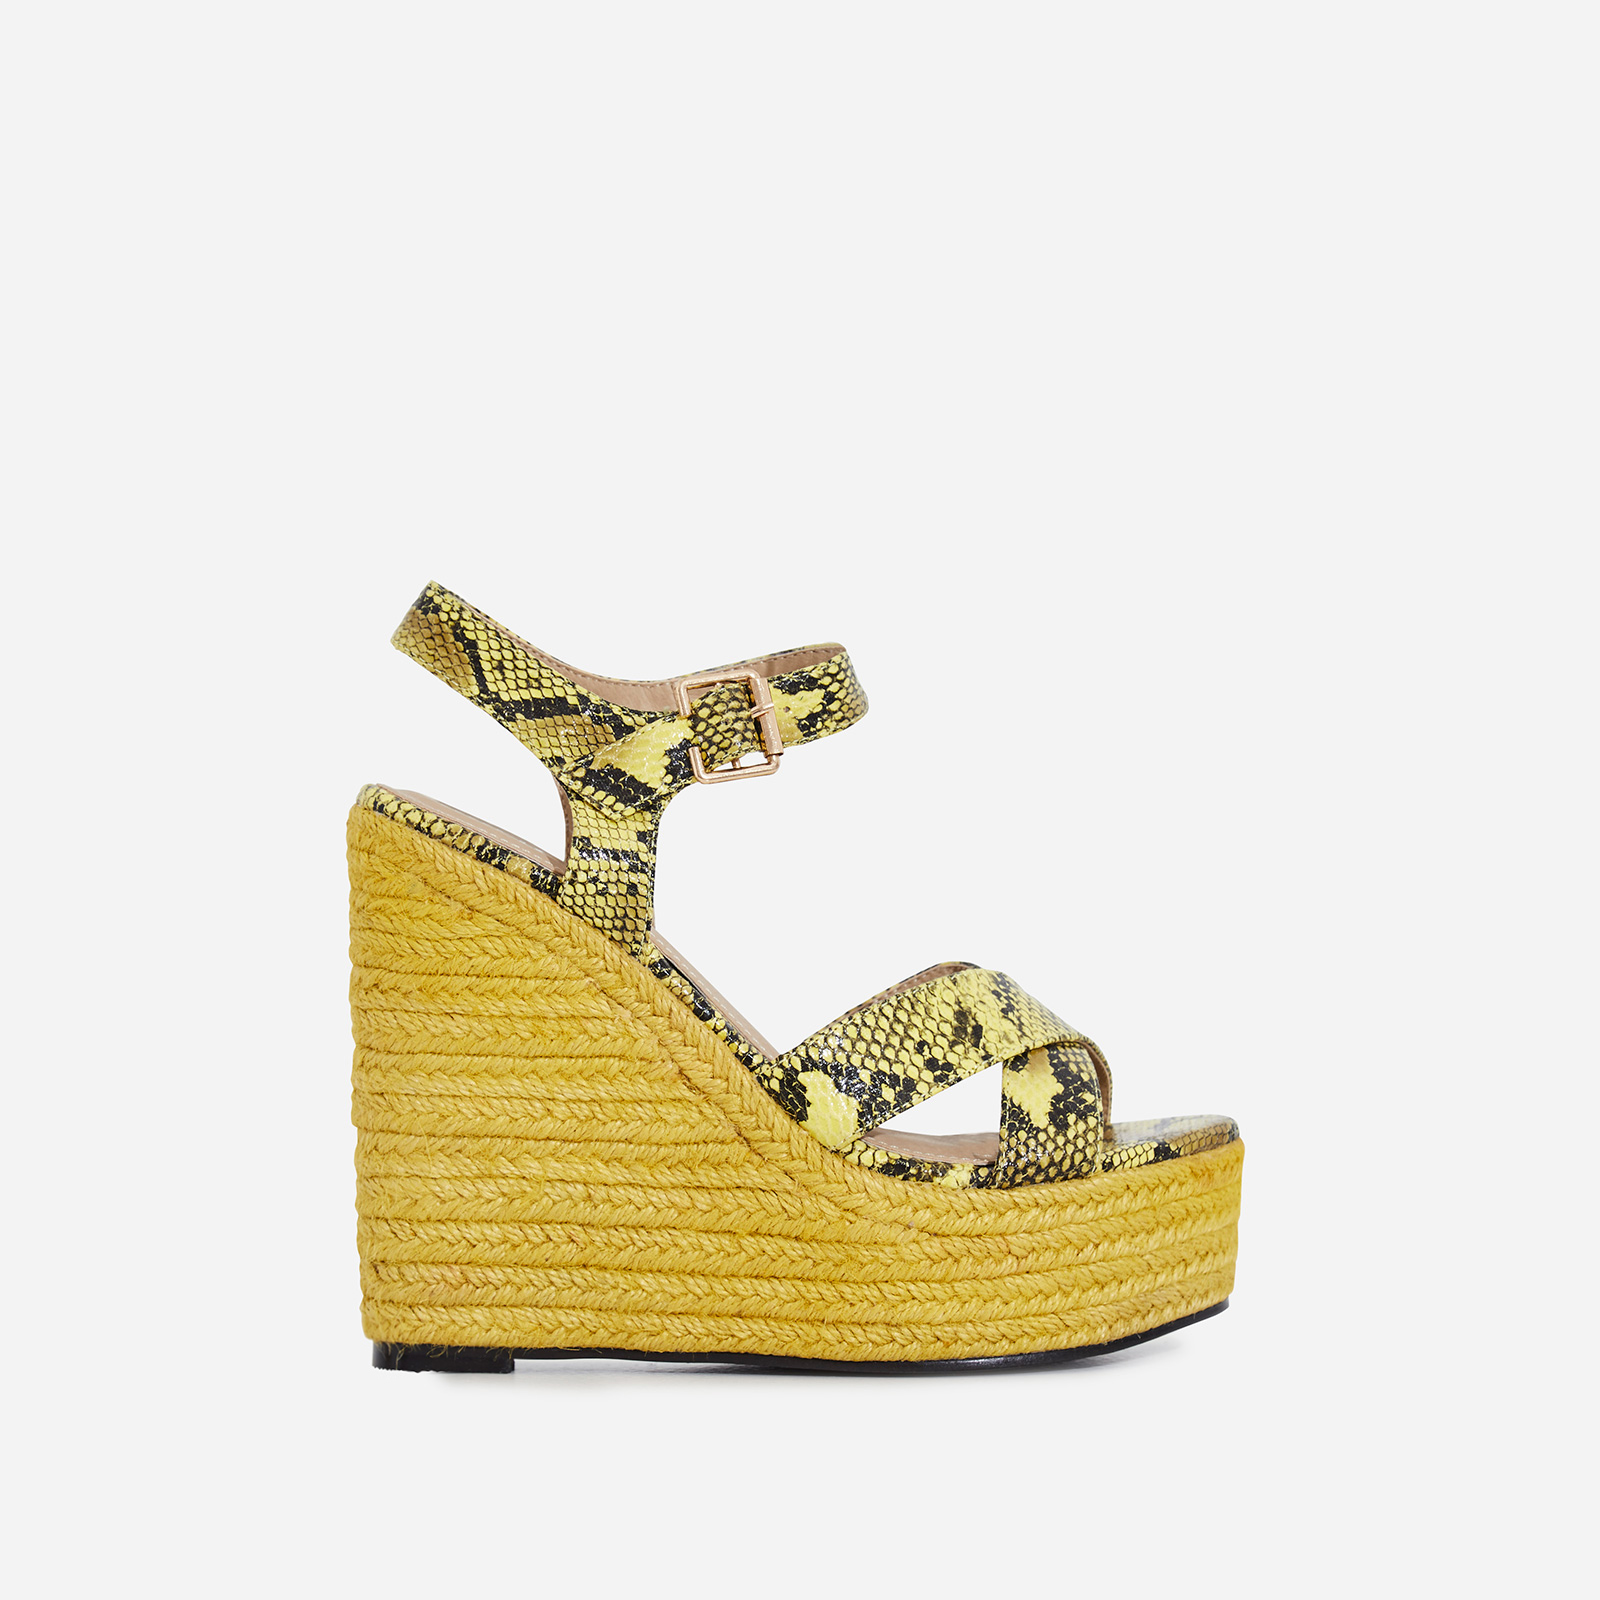 Kadi Espadrille Wedge Platform Heel In Yellow Snake Faux Leather